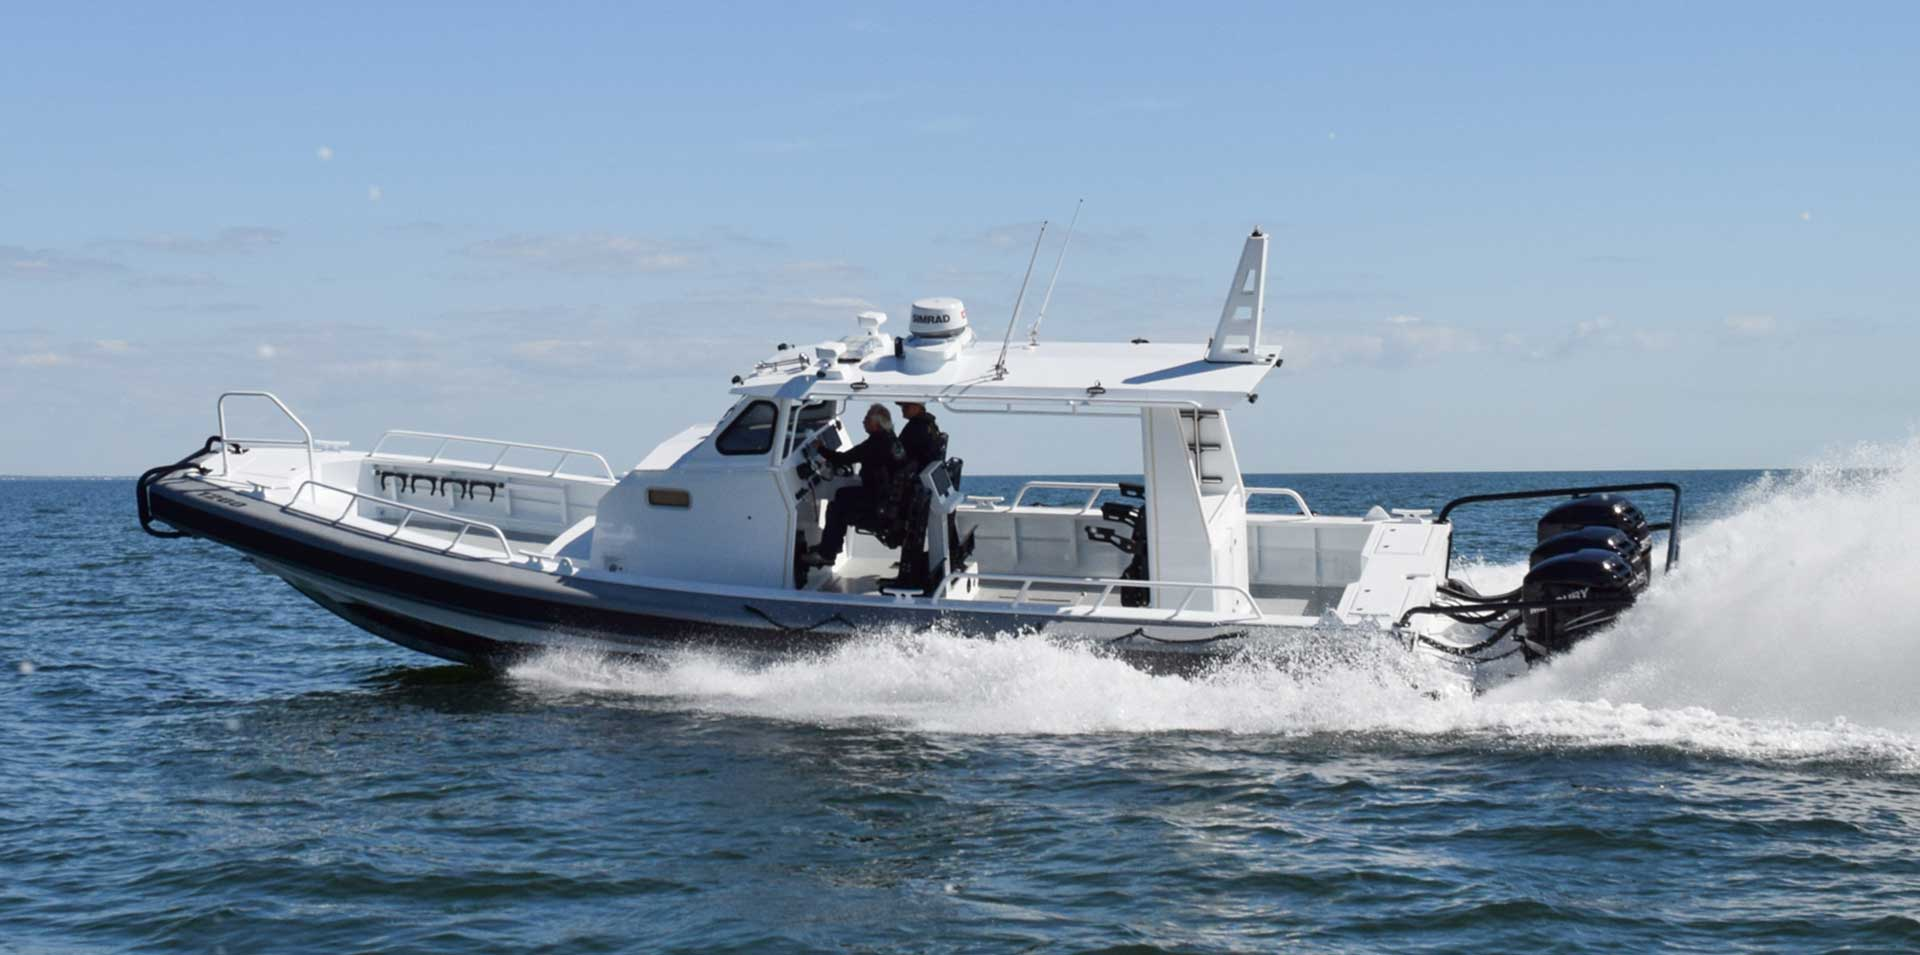 Silver Ships Ambar Series AM 1200 patrol boat in action on ocean